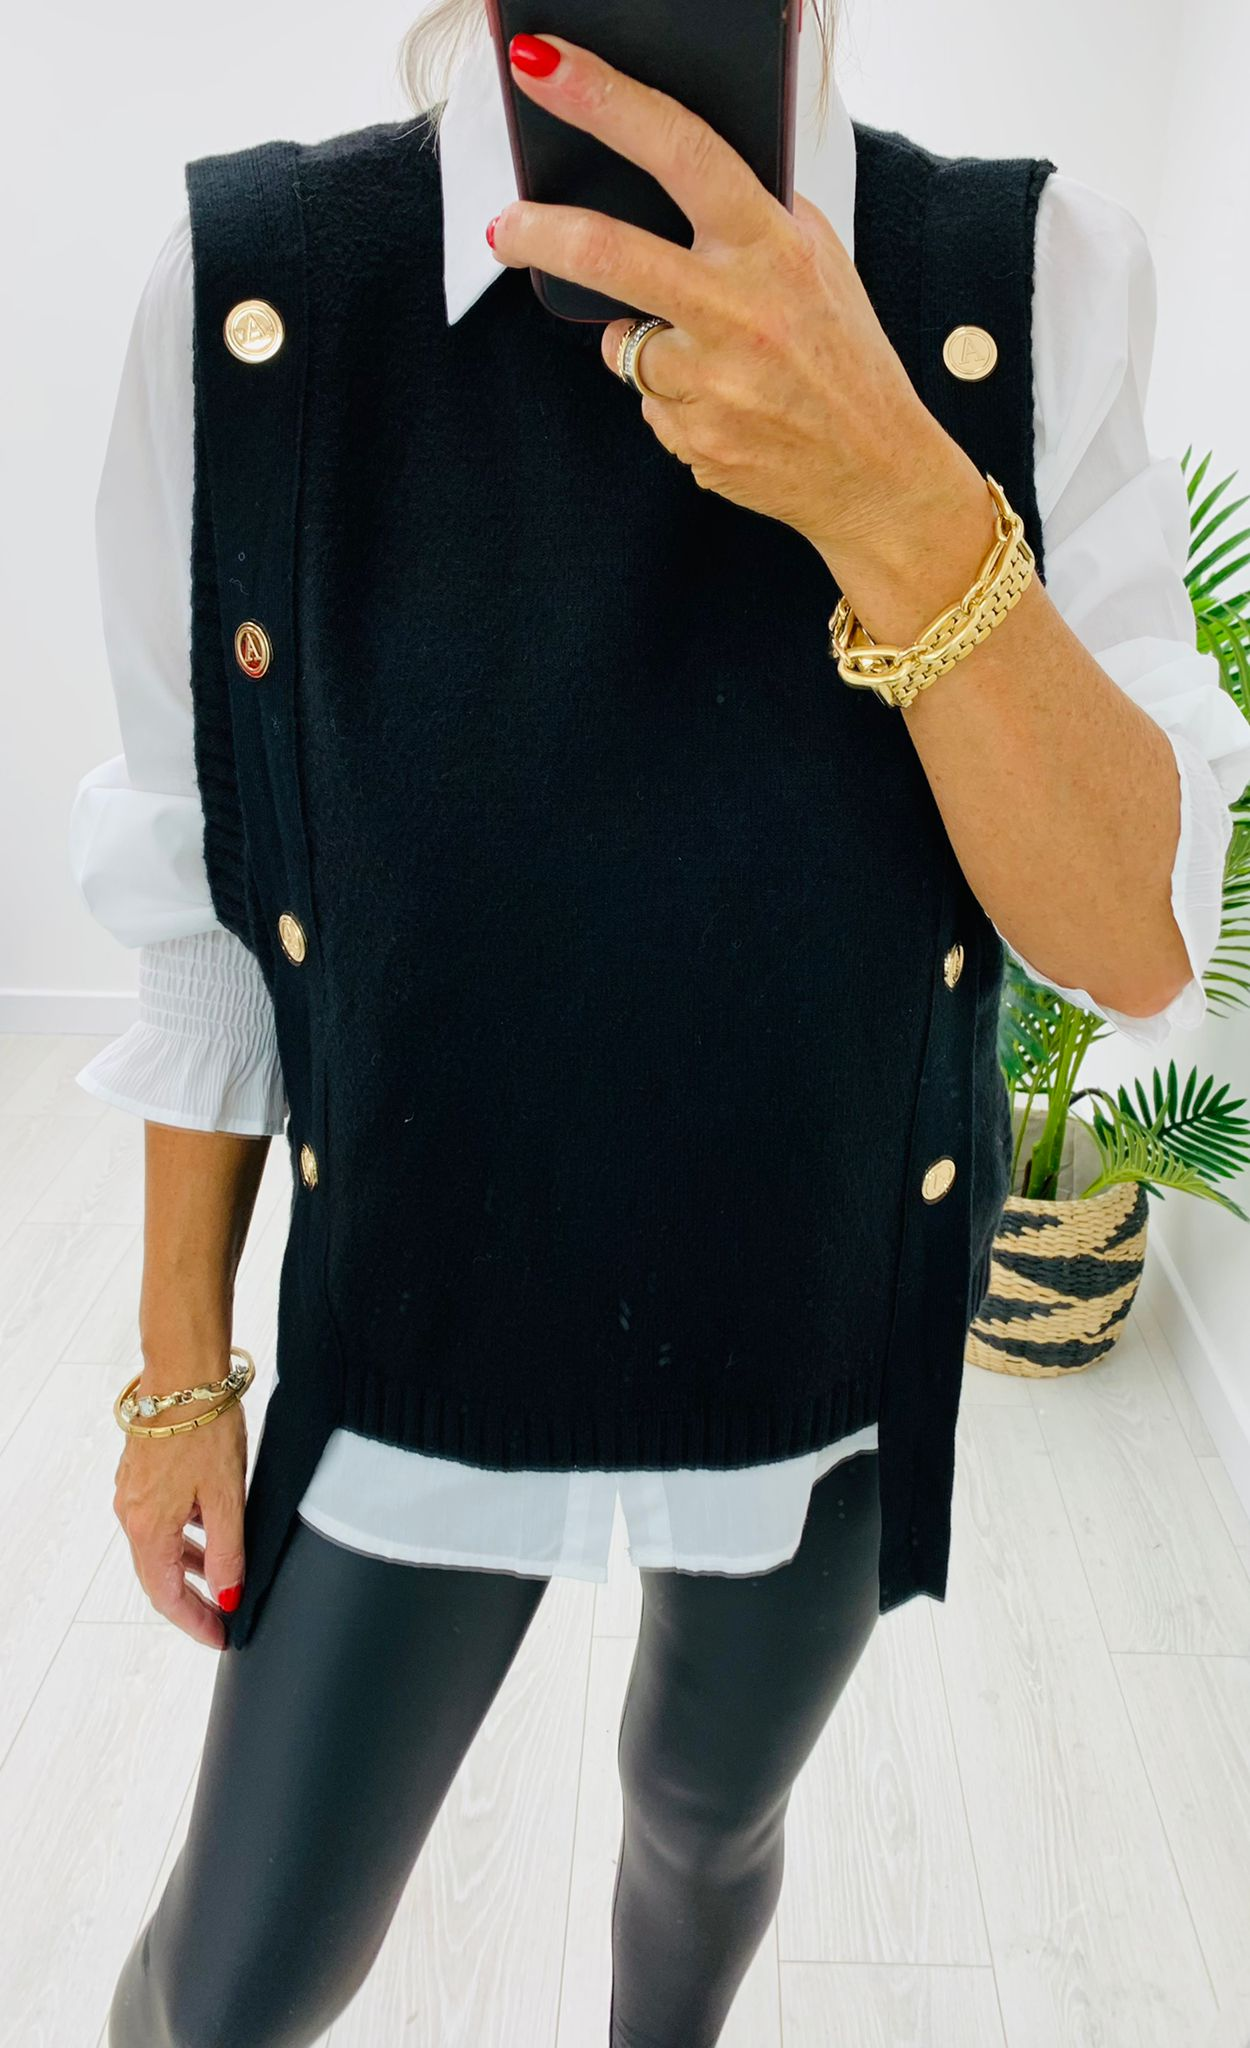 Black sweater vest with white shirt